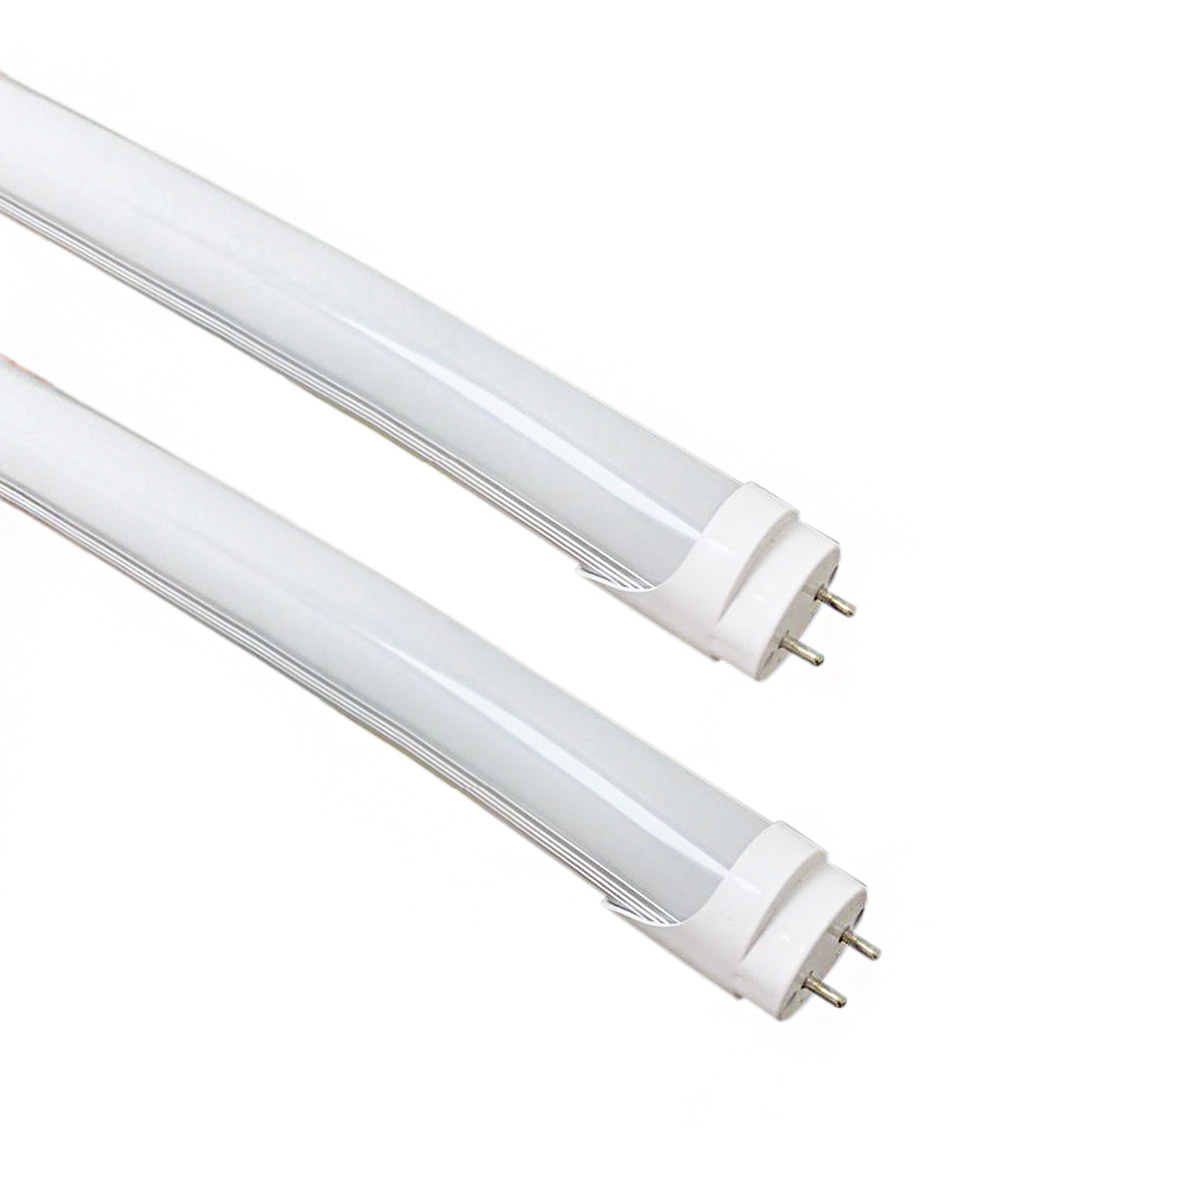 LED tube T8 36w 120cm opaque diffuser for ceiling light fixtures T8-36W-120